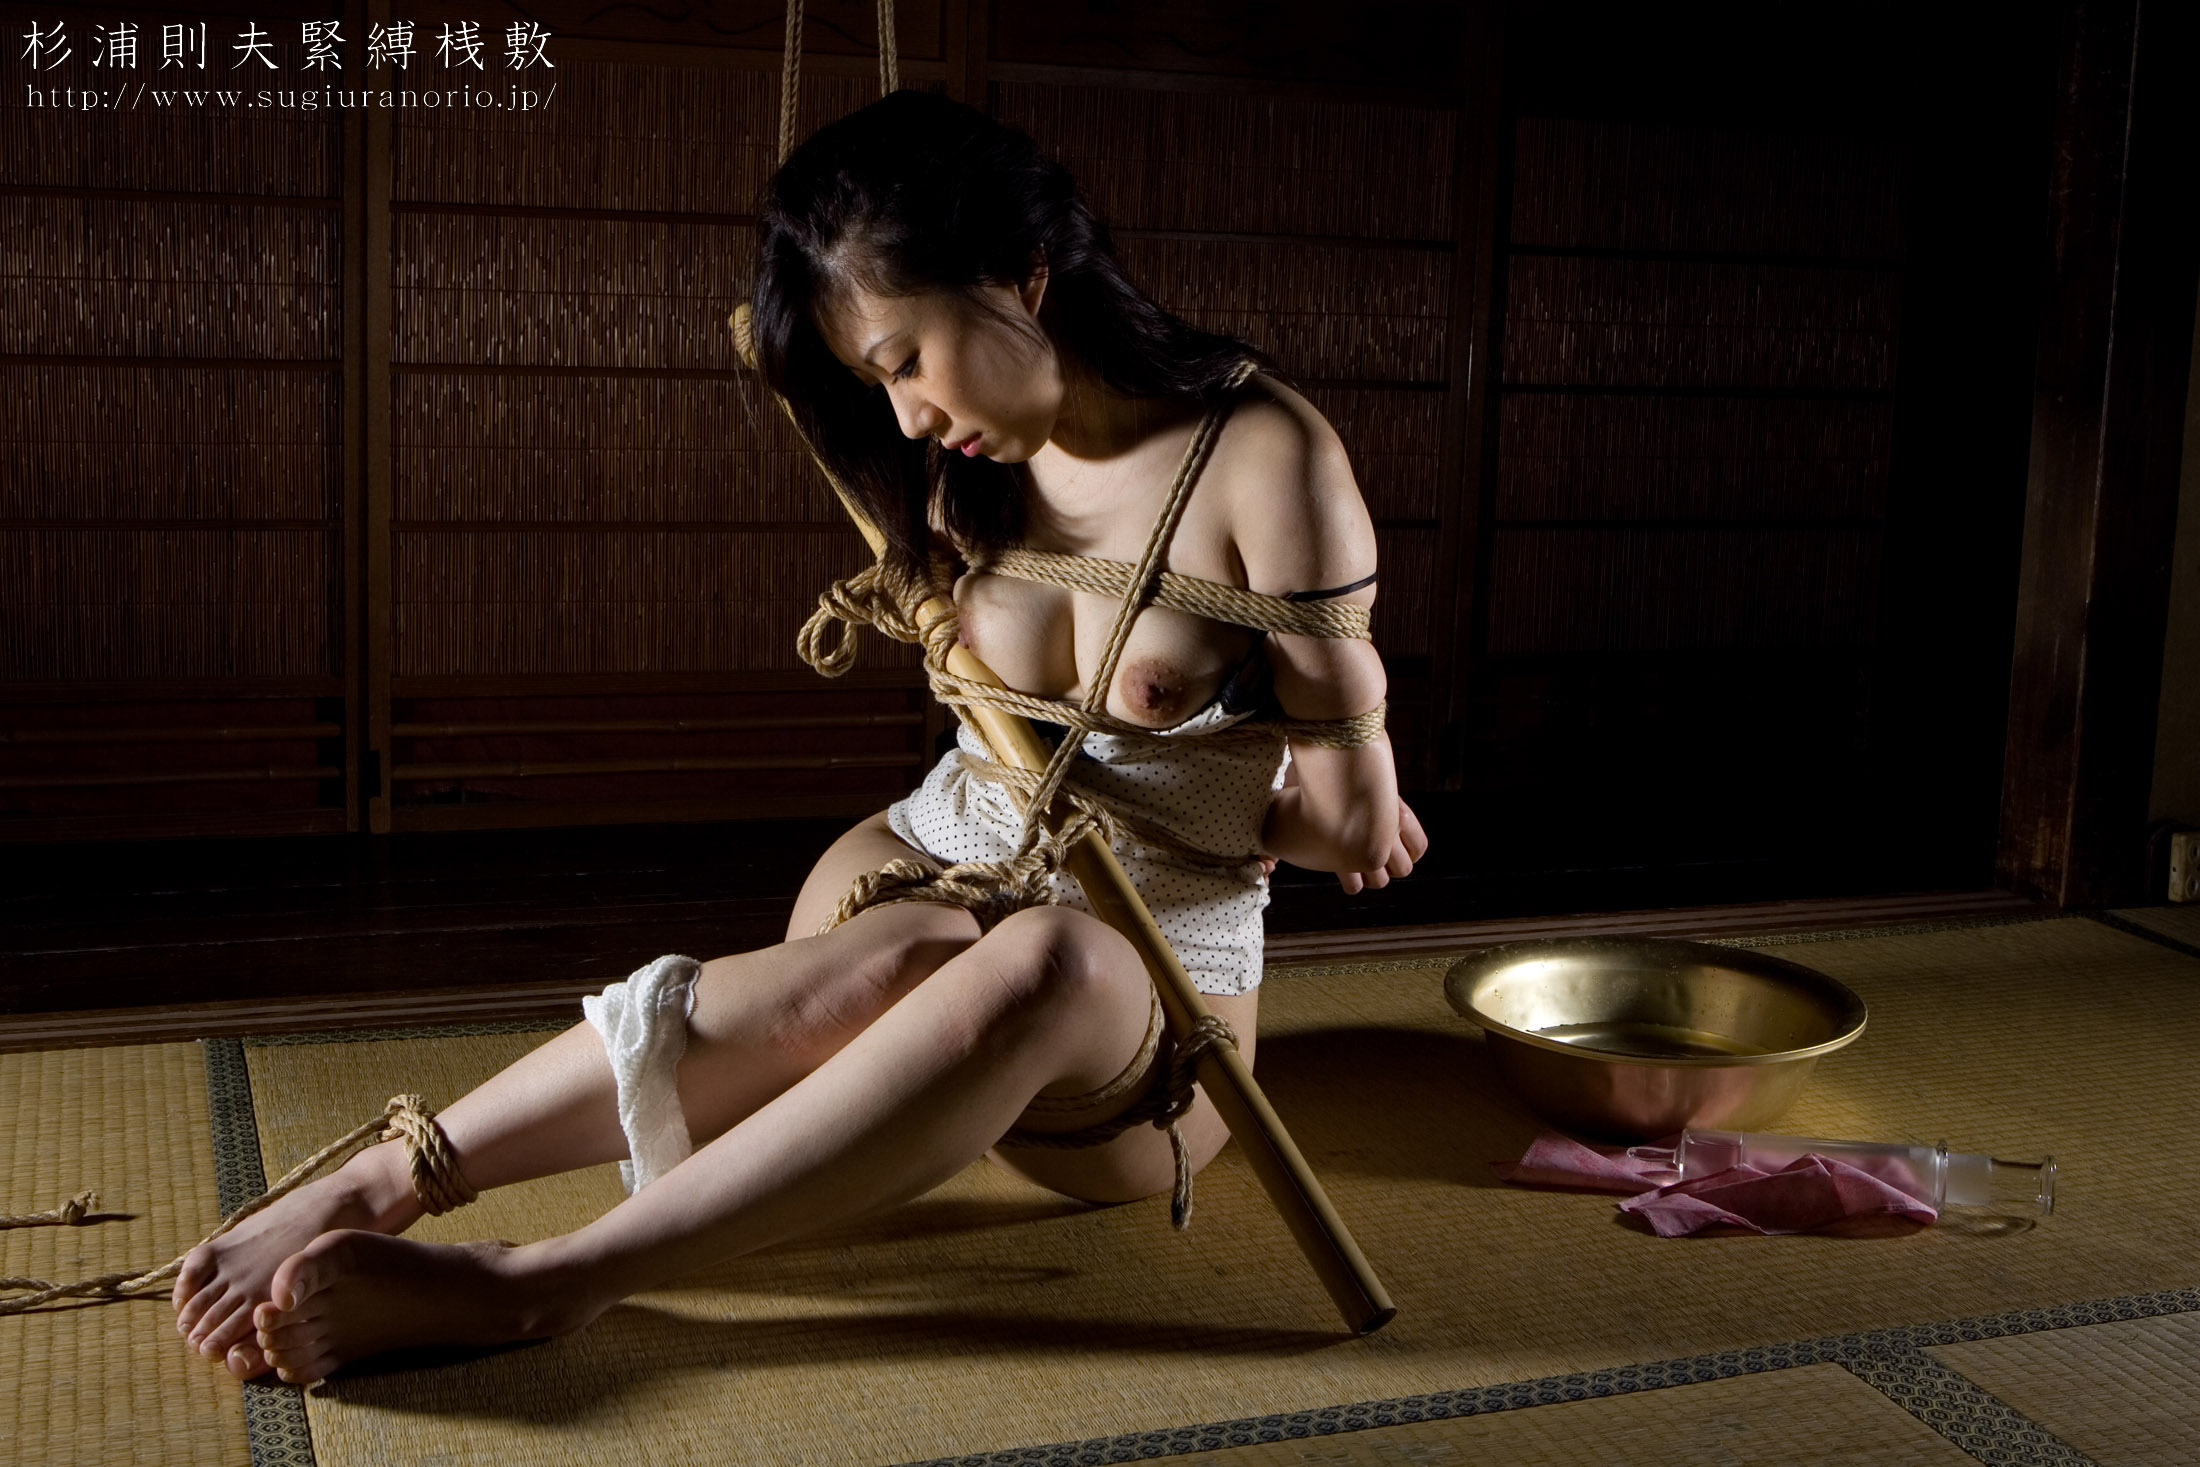 Pussylover japan erotic girls